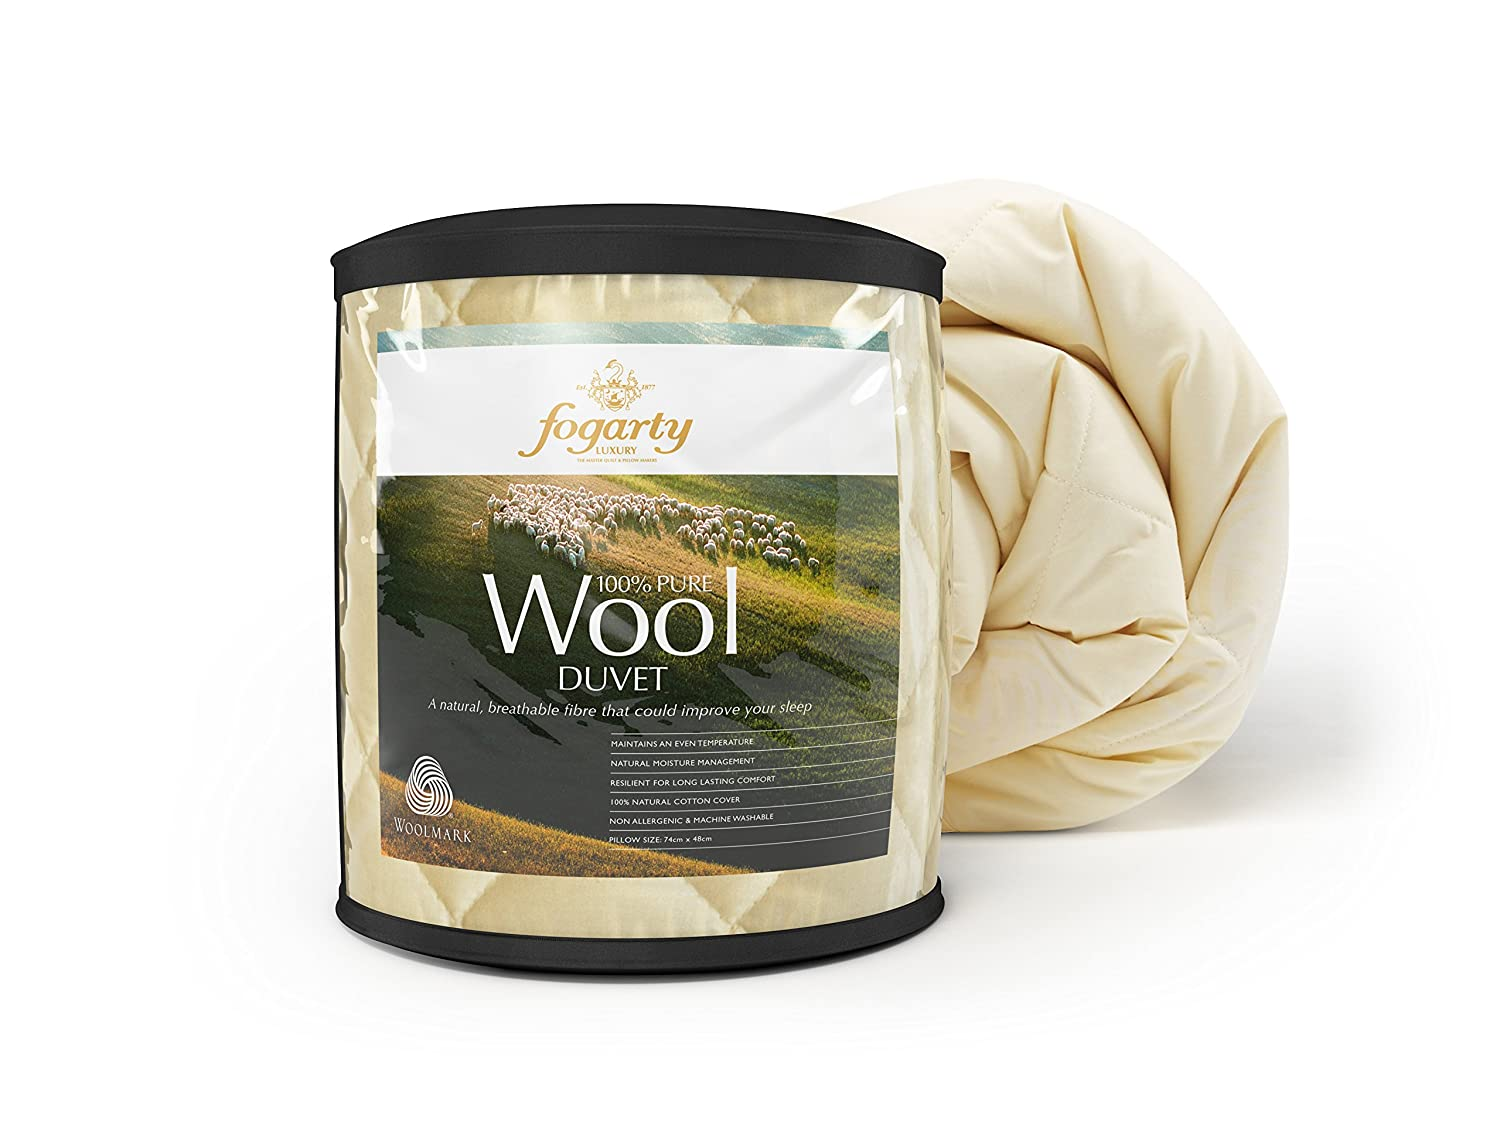 Amazon.com: Fogarty Pure Wool Duvet, Double by Fogarty: Paintings : fogarty quilts - Adamdwight.com